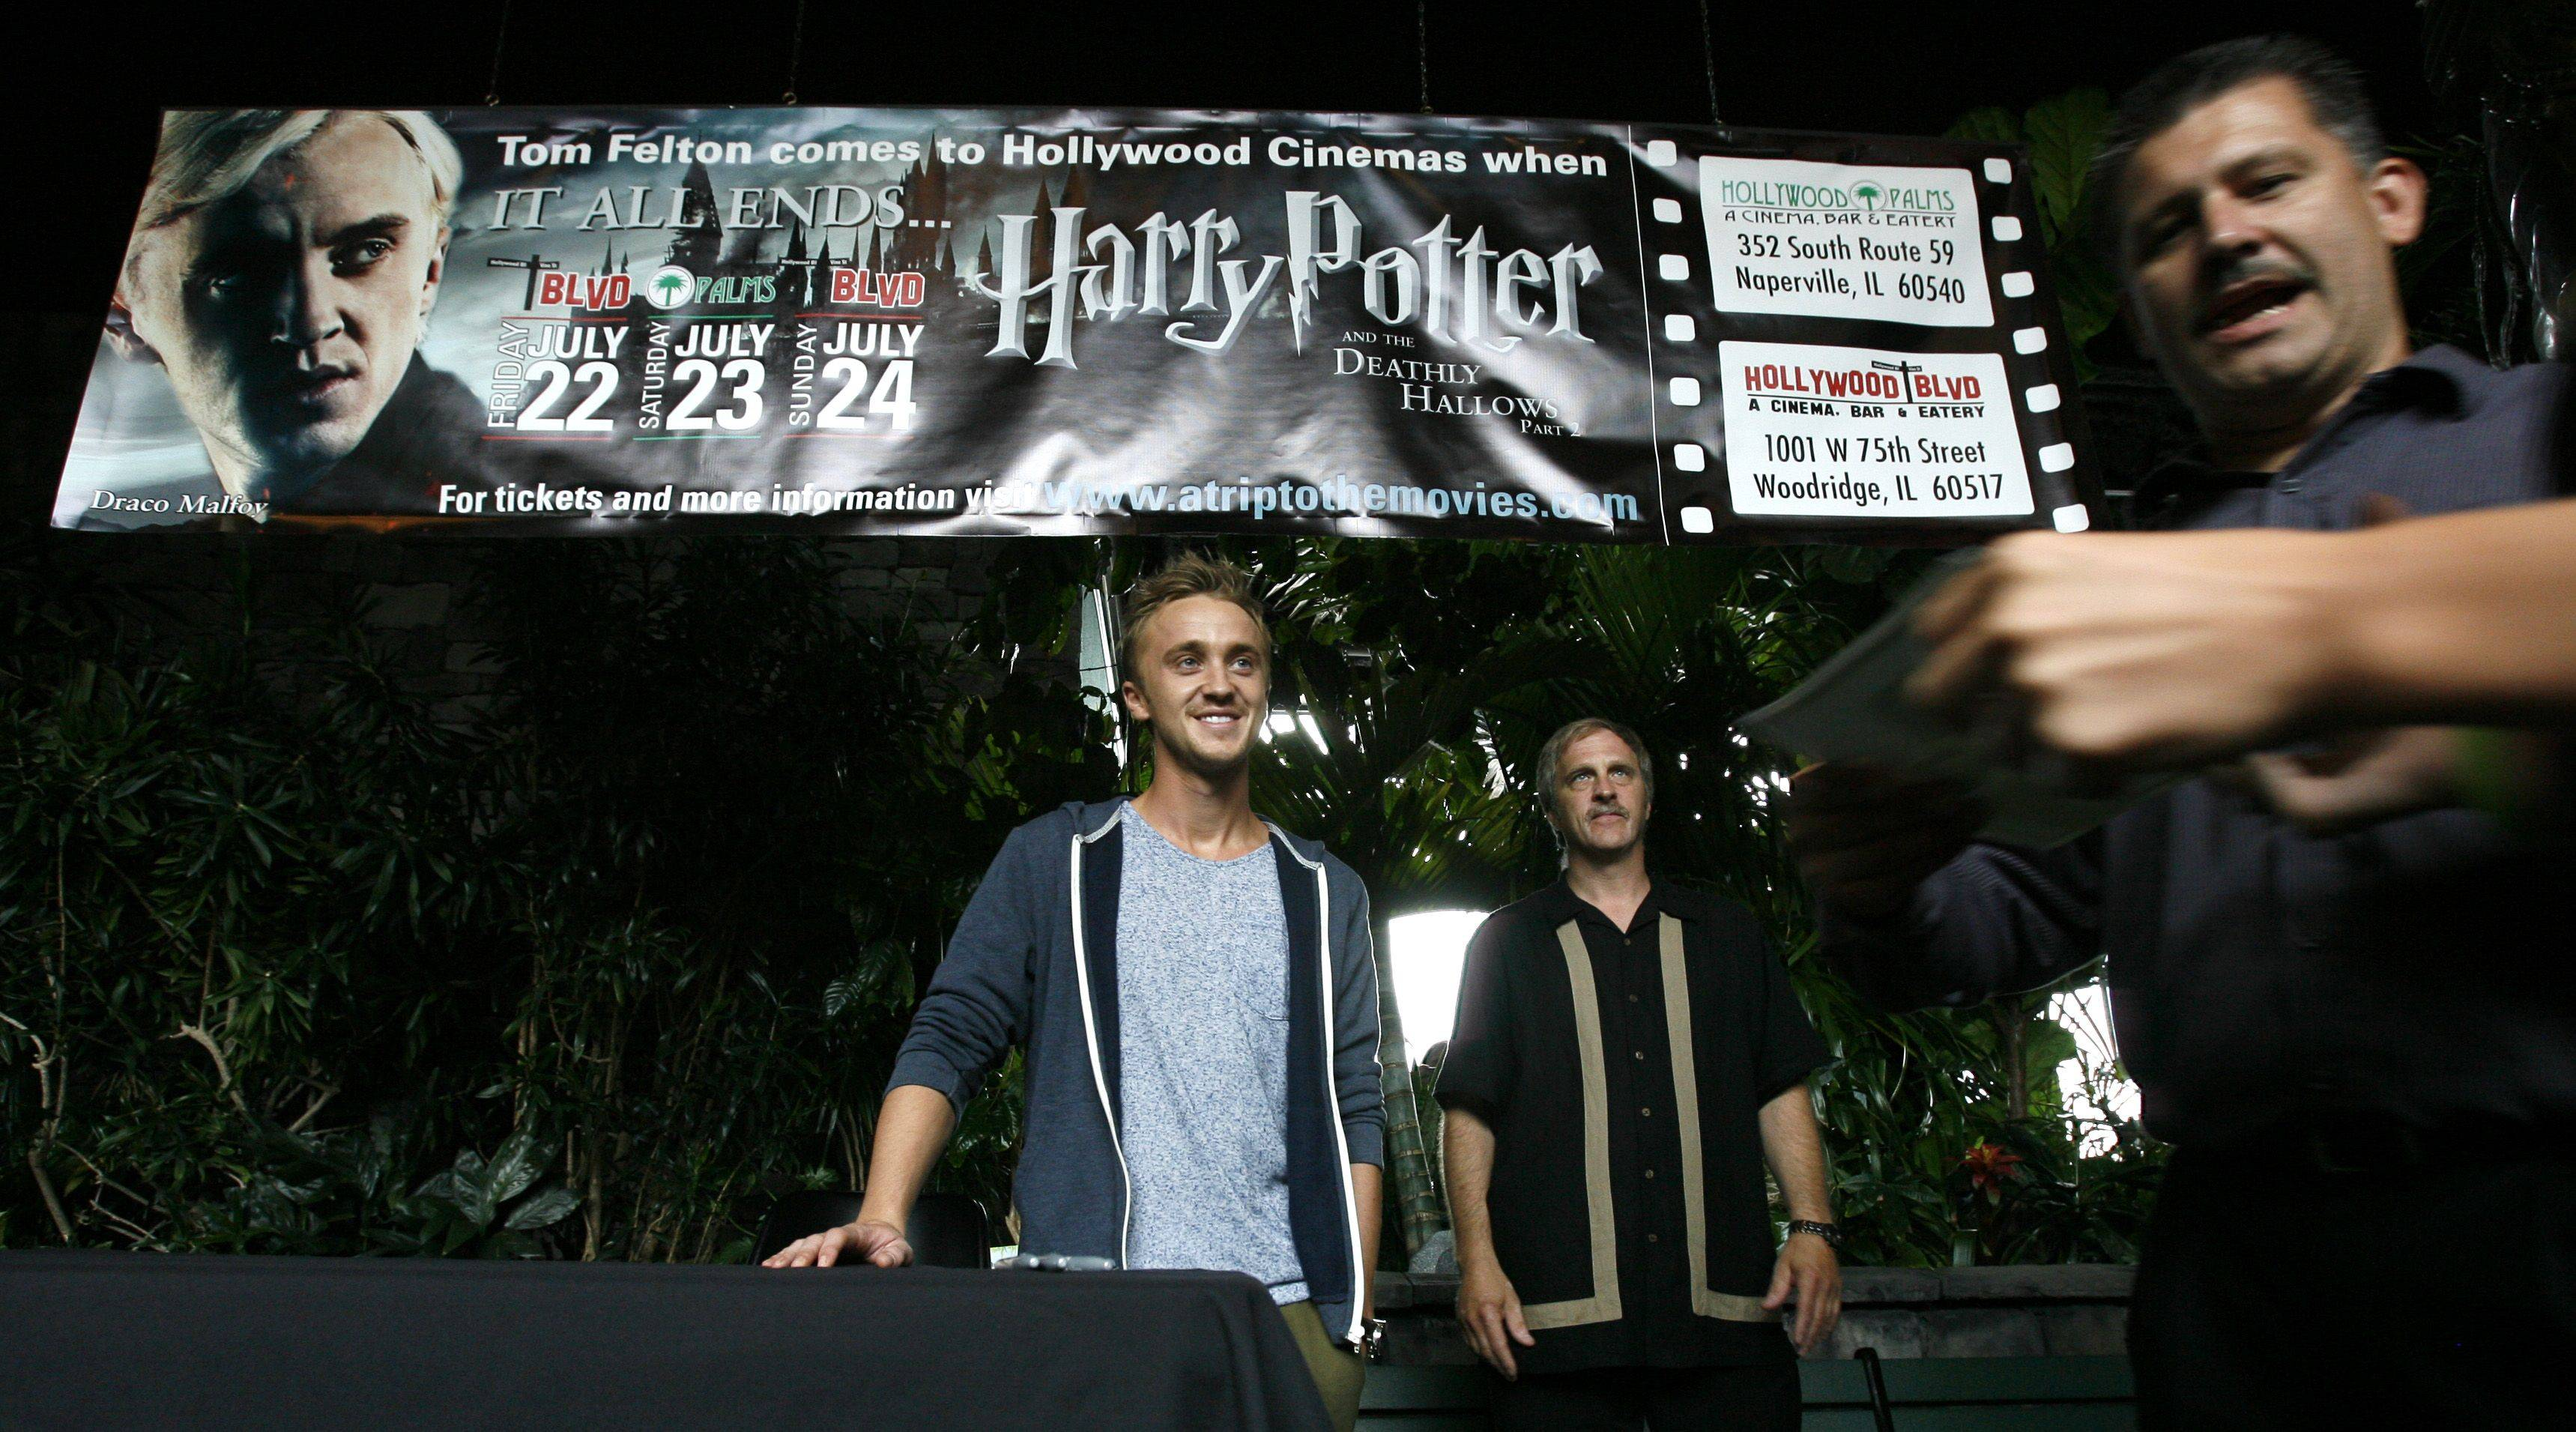 Actor Tom Felton, who plays Draco Malfoy in the Harry Potter movie series, looks toward hundreds of fans before signing autographs at the Hollywood Palms Cinema in Naperville on Saturday.